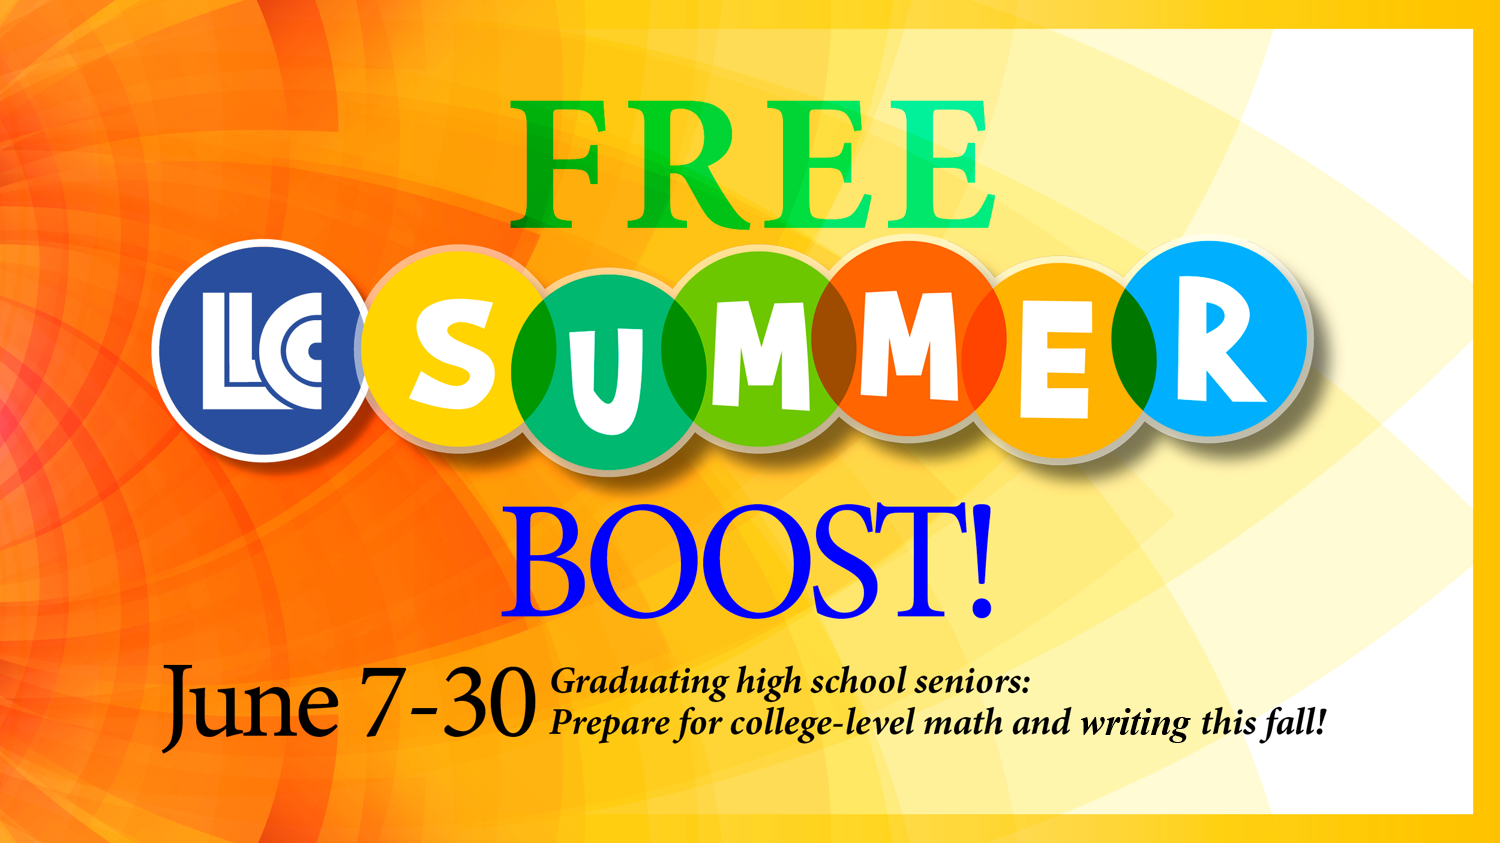 FREE LLCC Summer Boost! June 7-30. Graduating high school seniors: Prepare for college-level math and writing this fall!